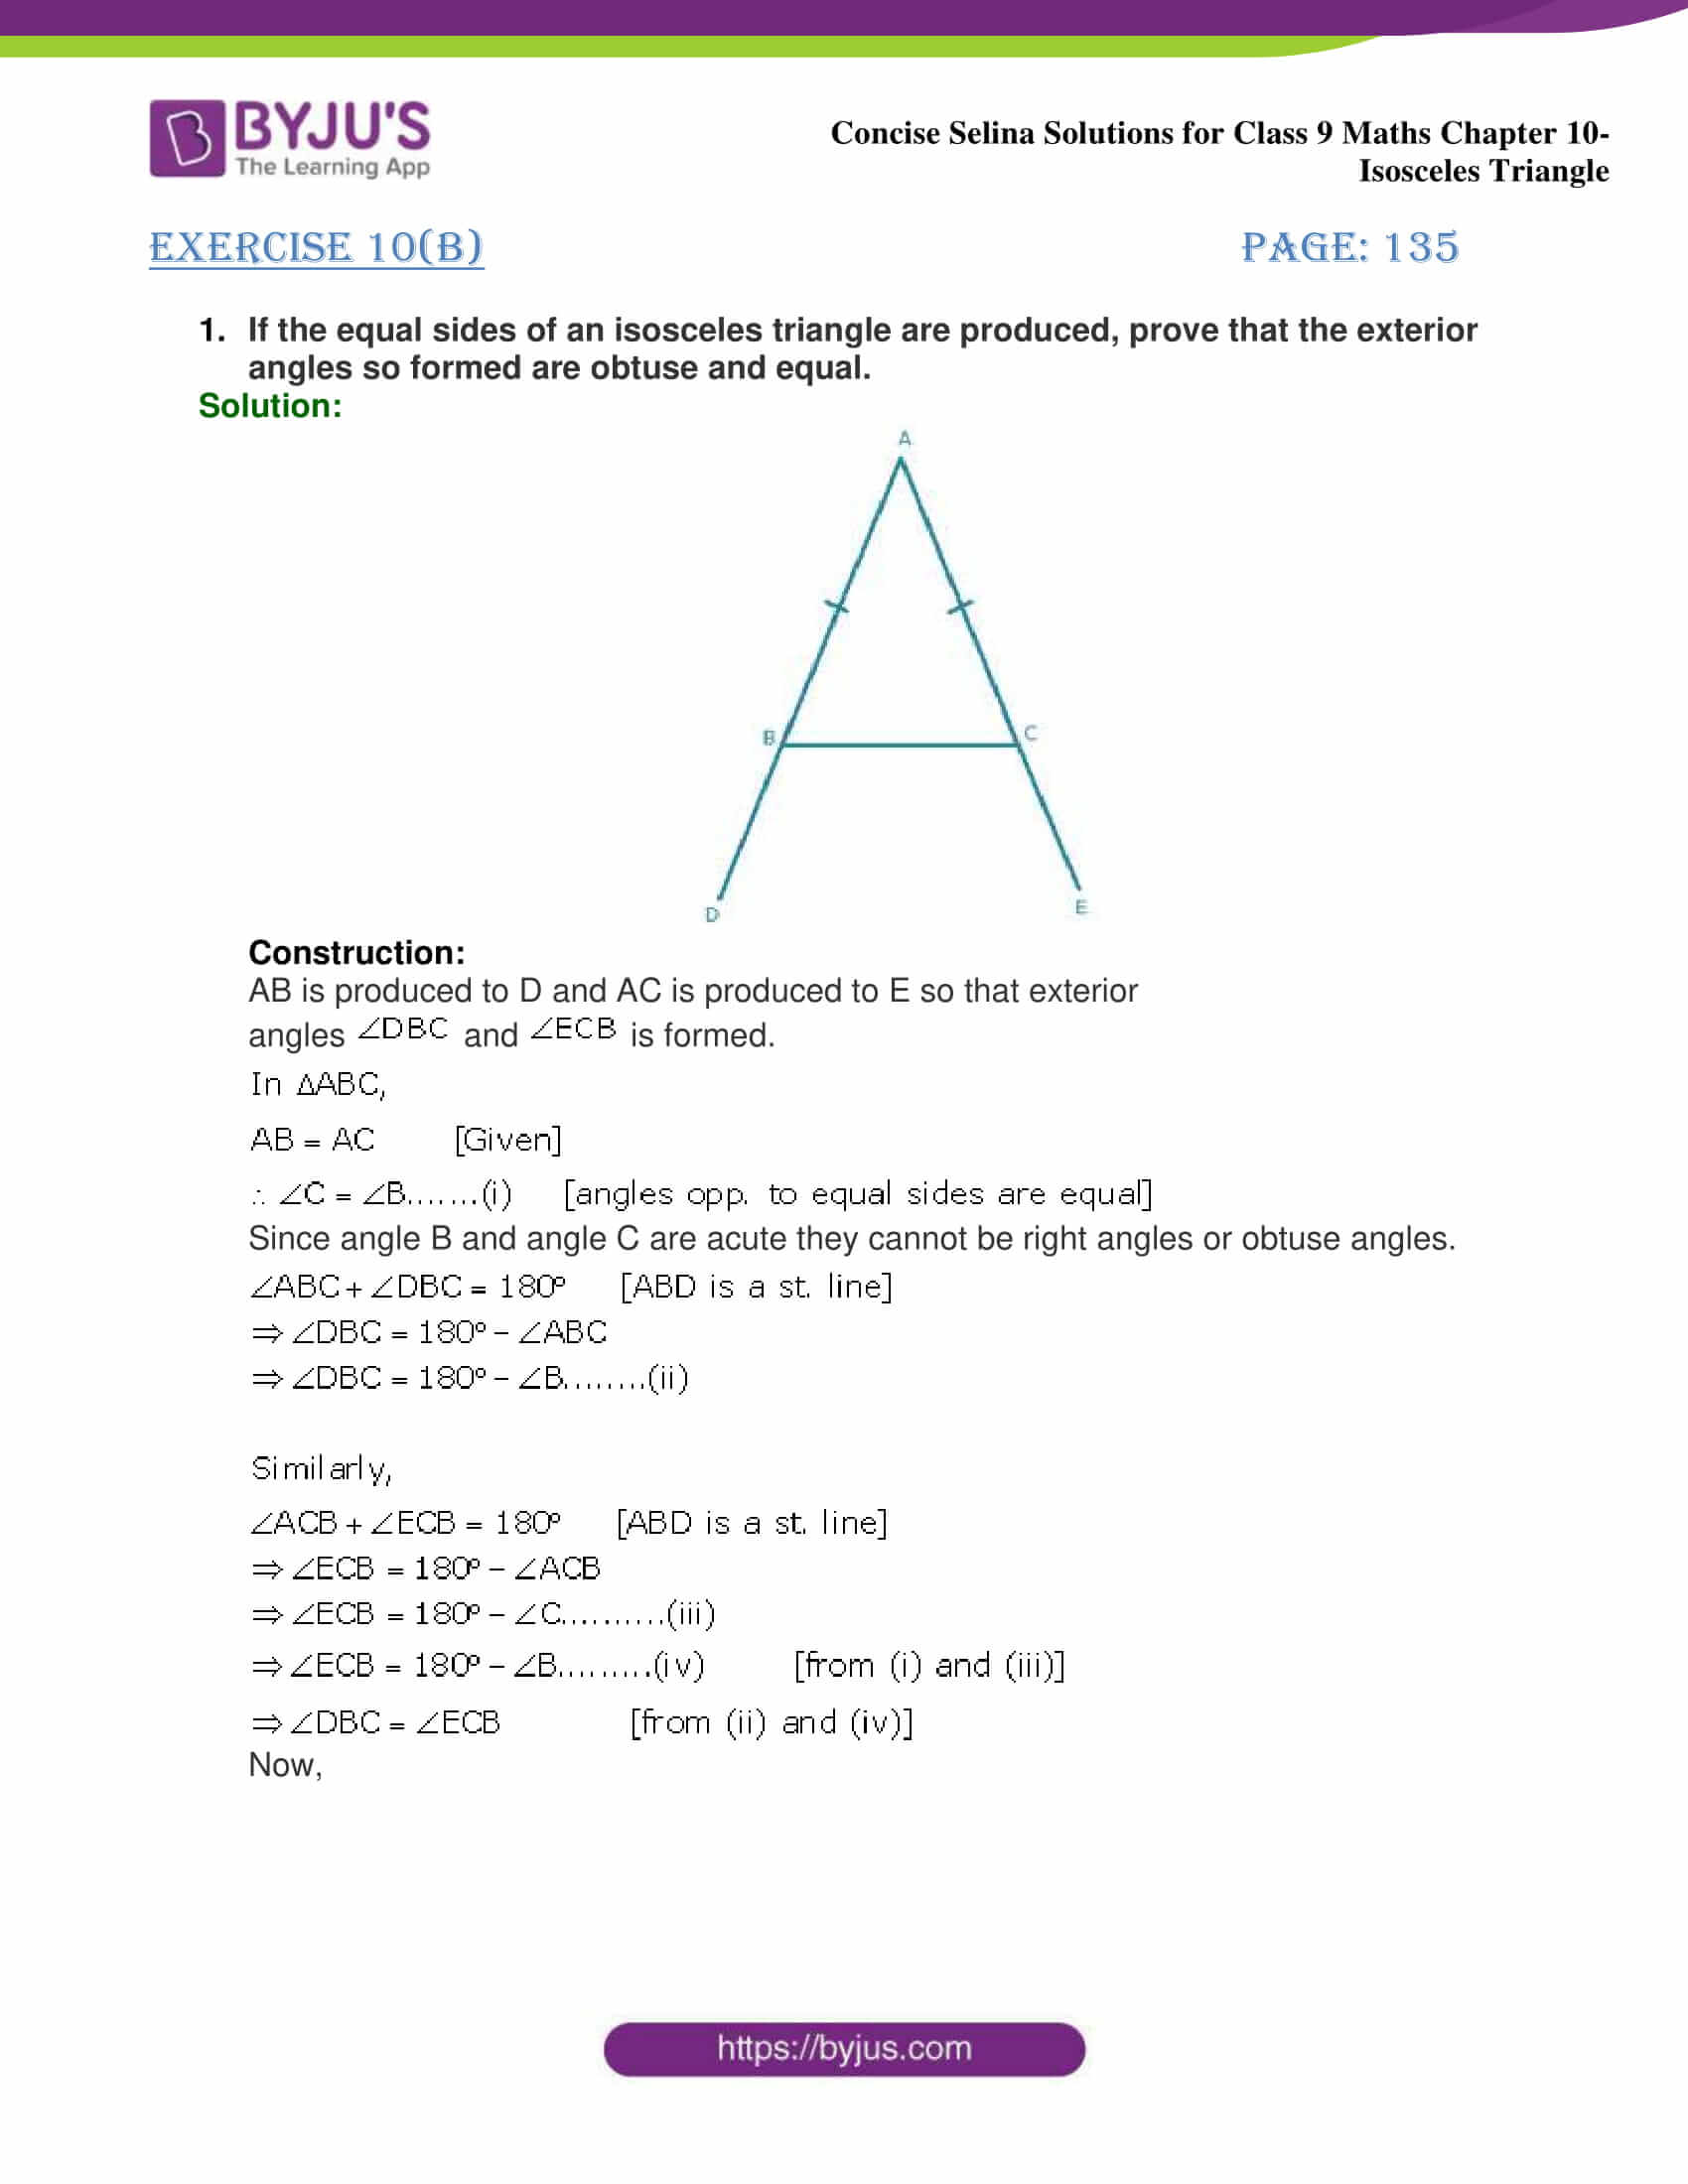 selina Solutions for Class 9 Maths Chapter 10 part 21